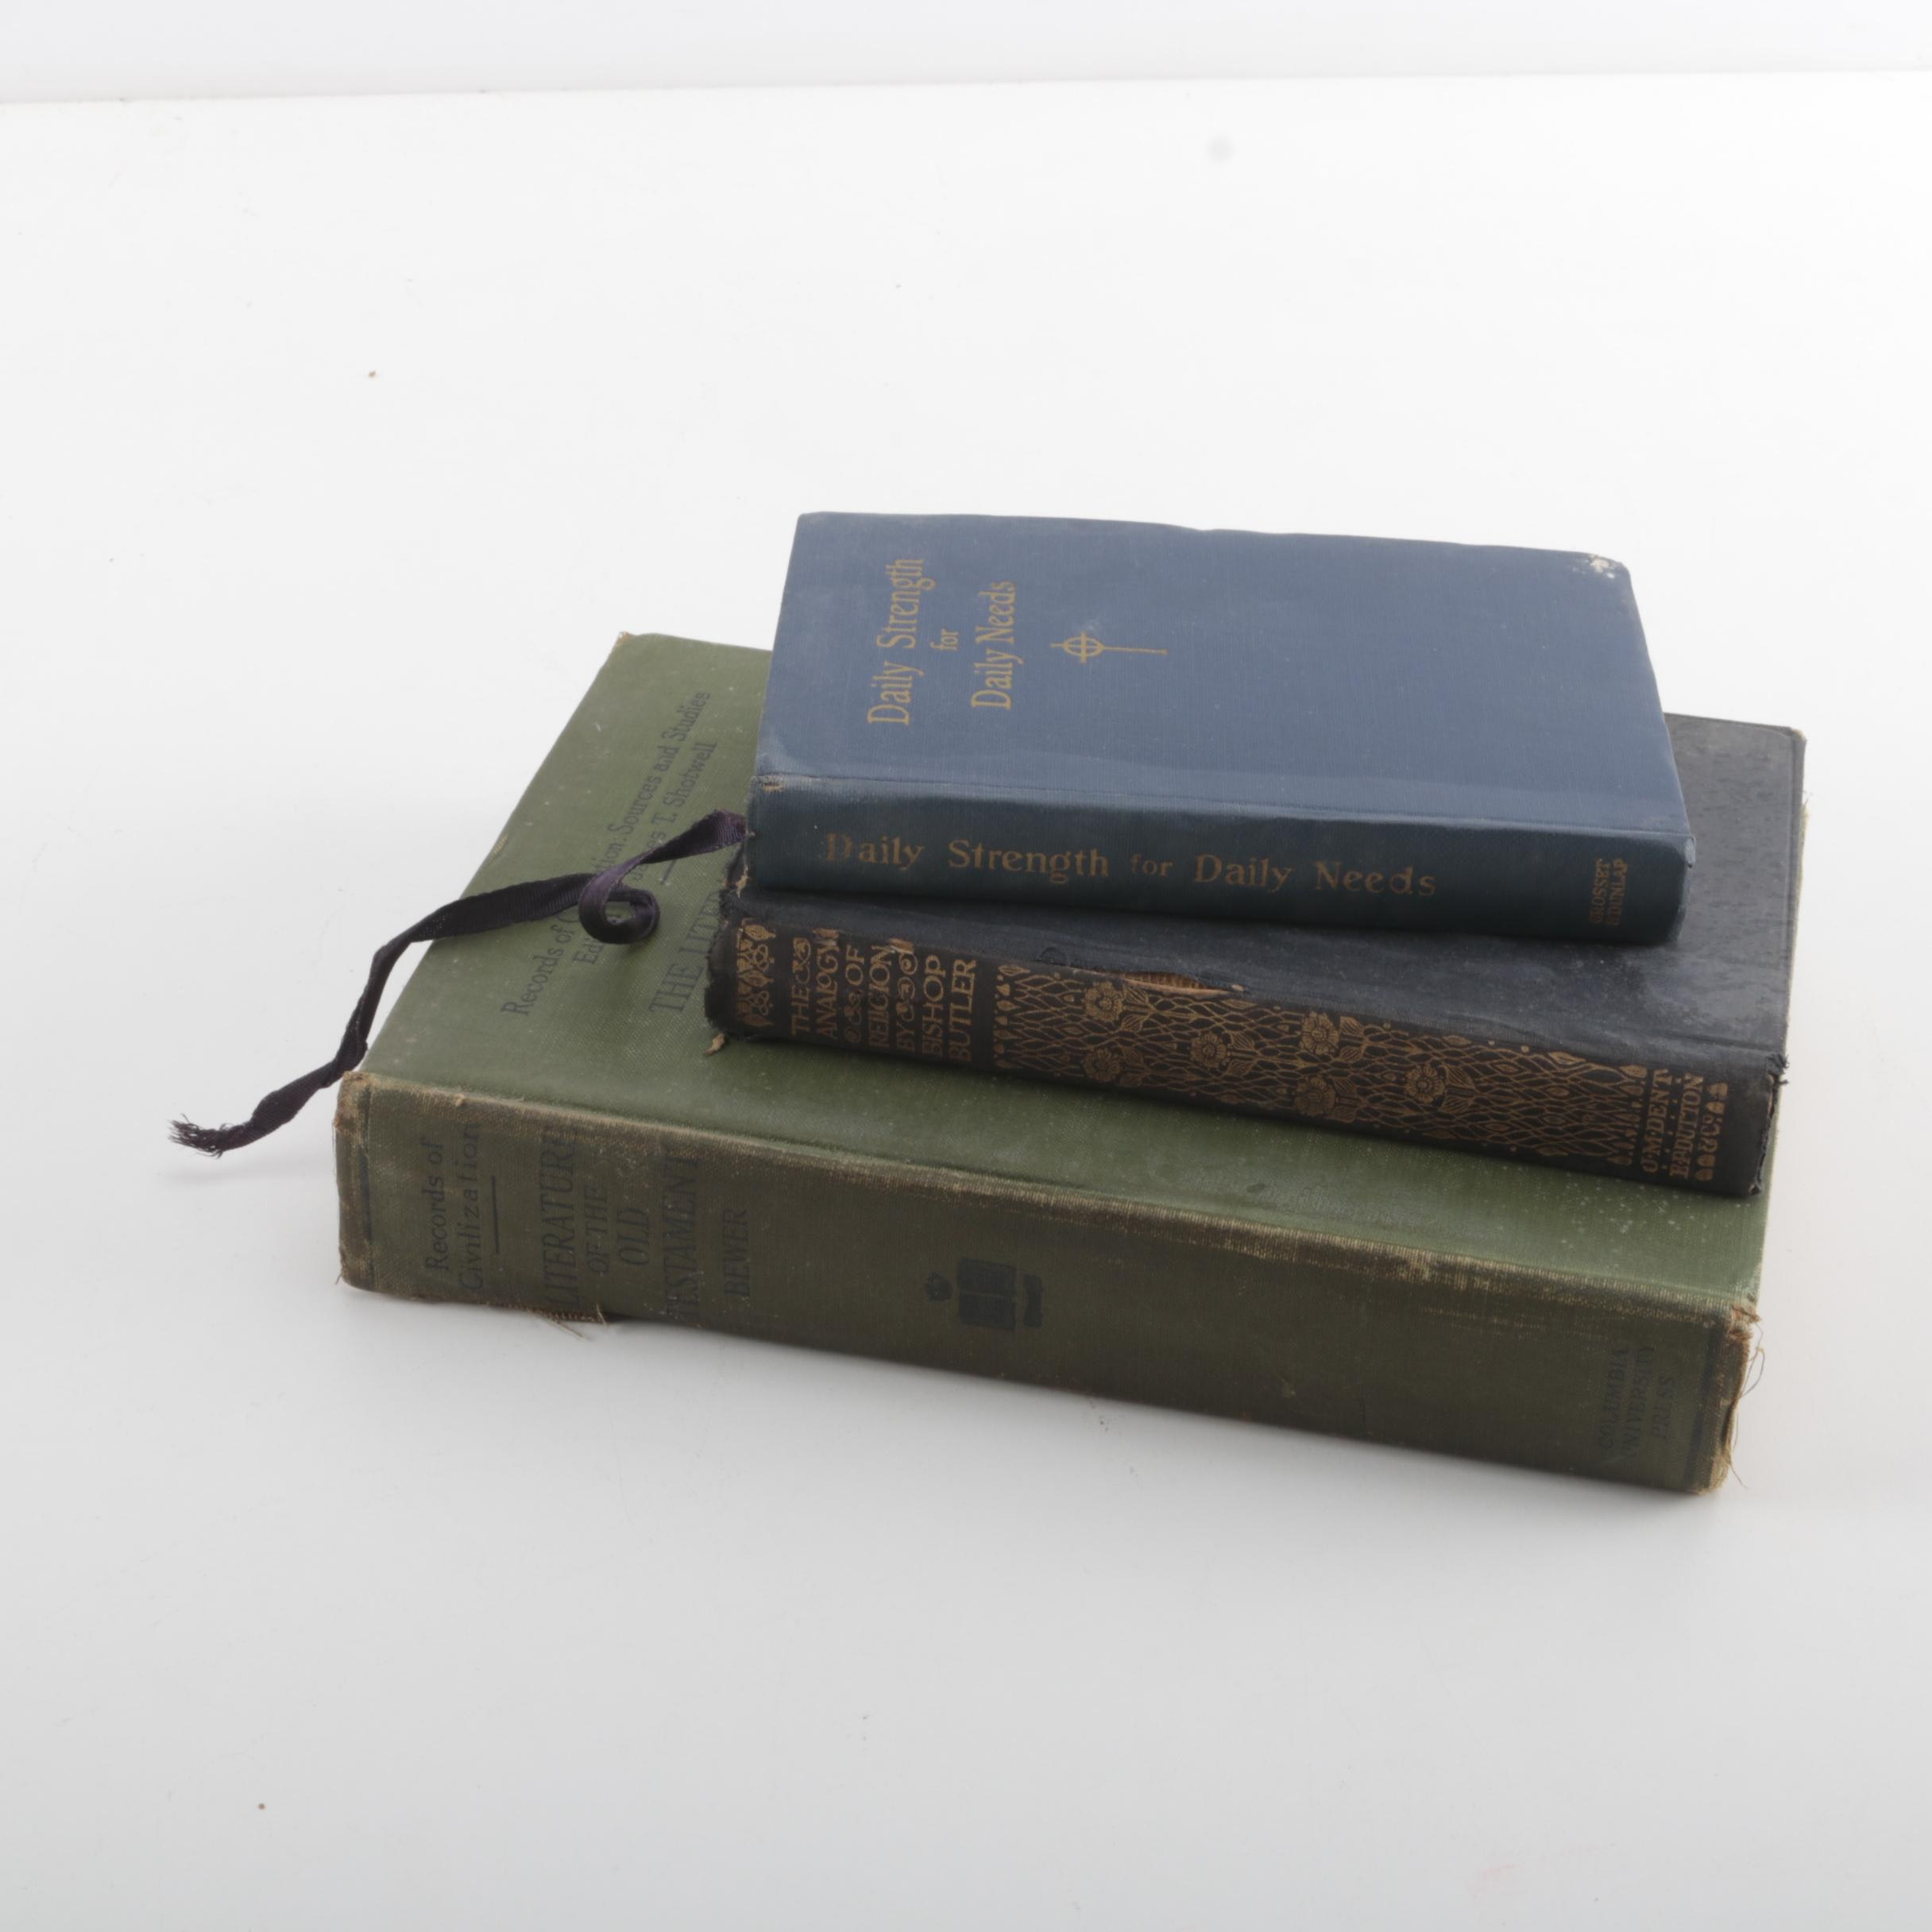 """Assorted Religious Books including Memorial Edition """"Daily Strength For Daily Needs"""" by Mary Wilder Tileston"""